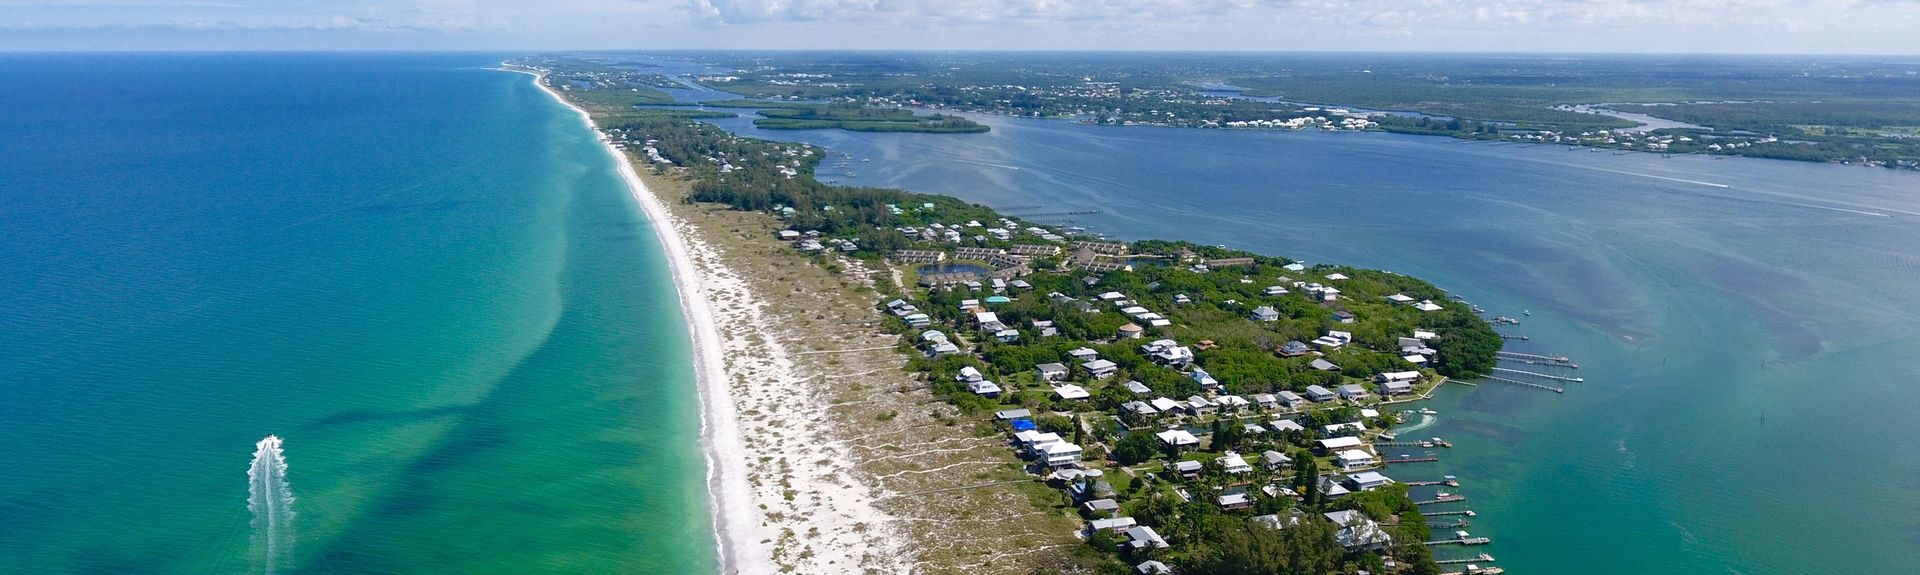 Island of Venice, Venedig, Florida, USA